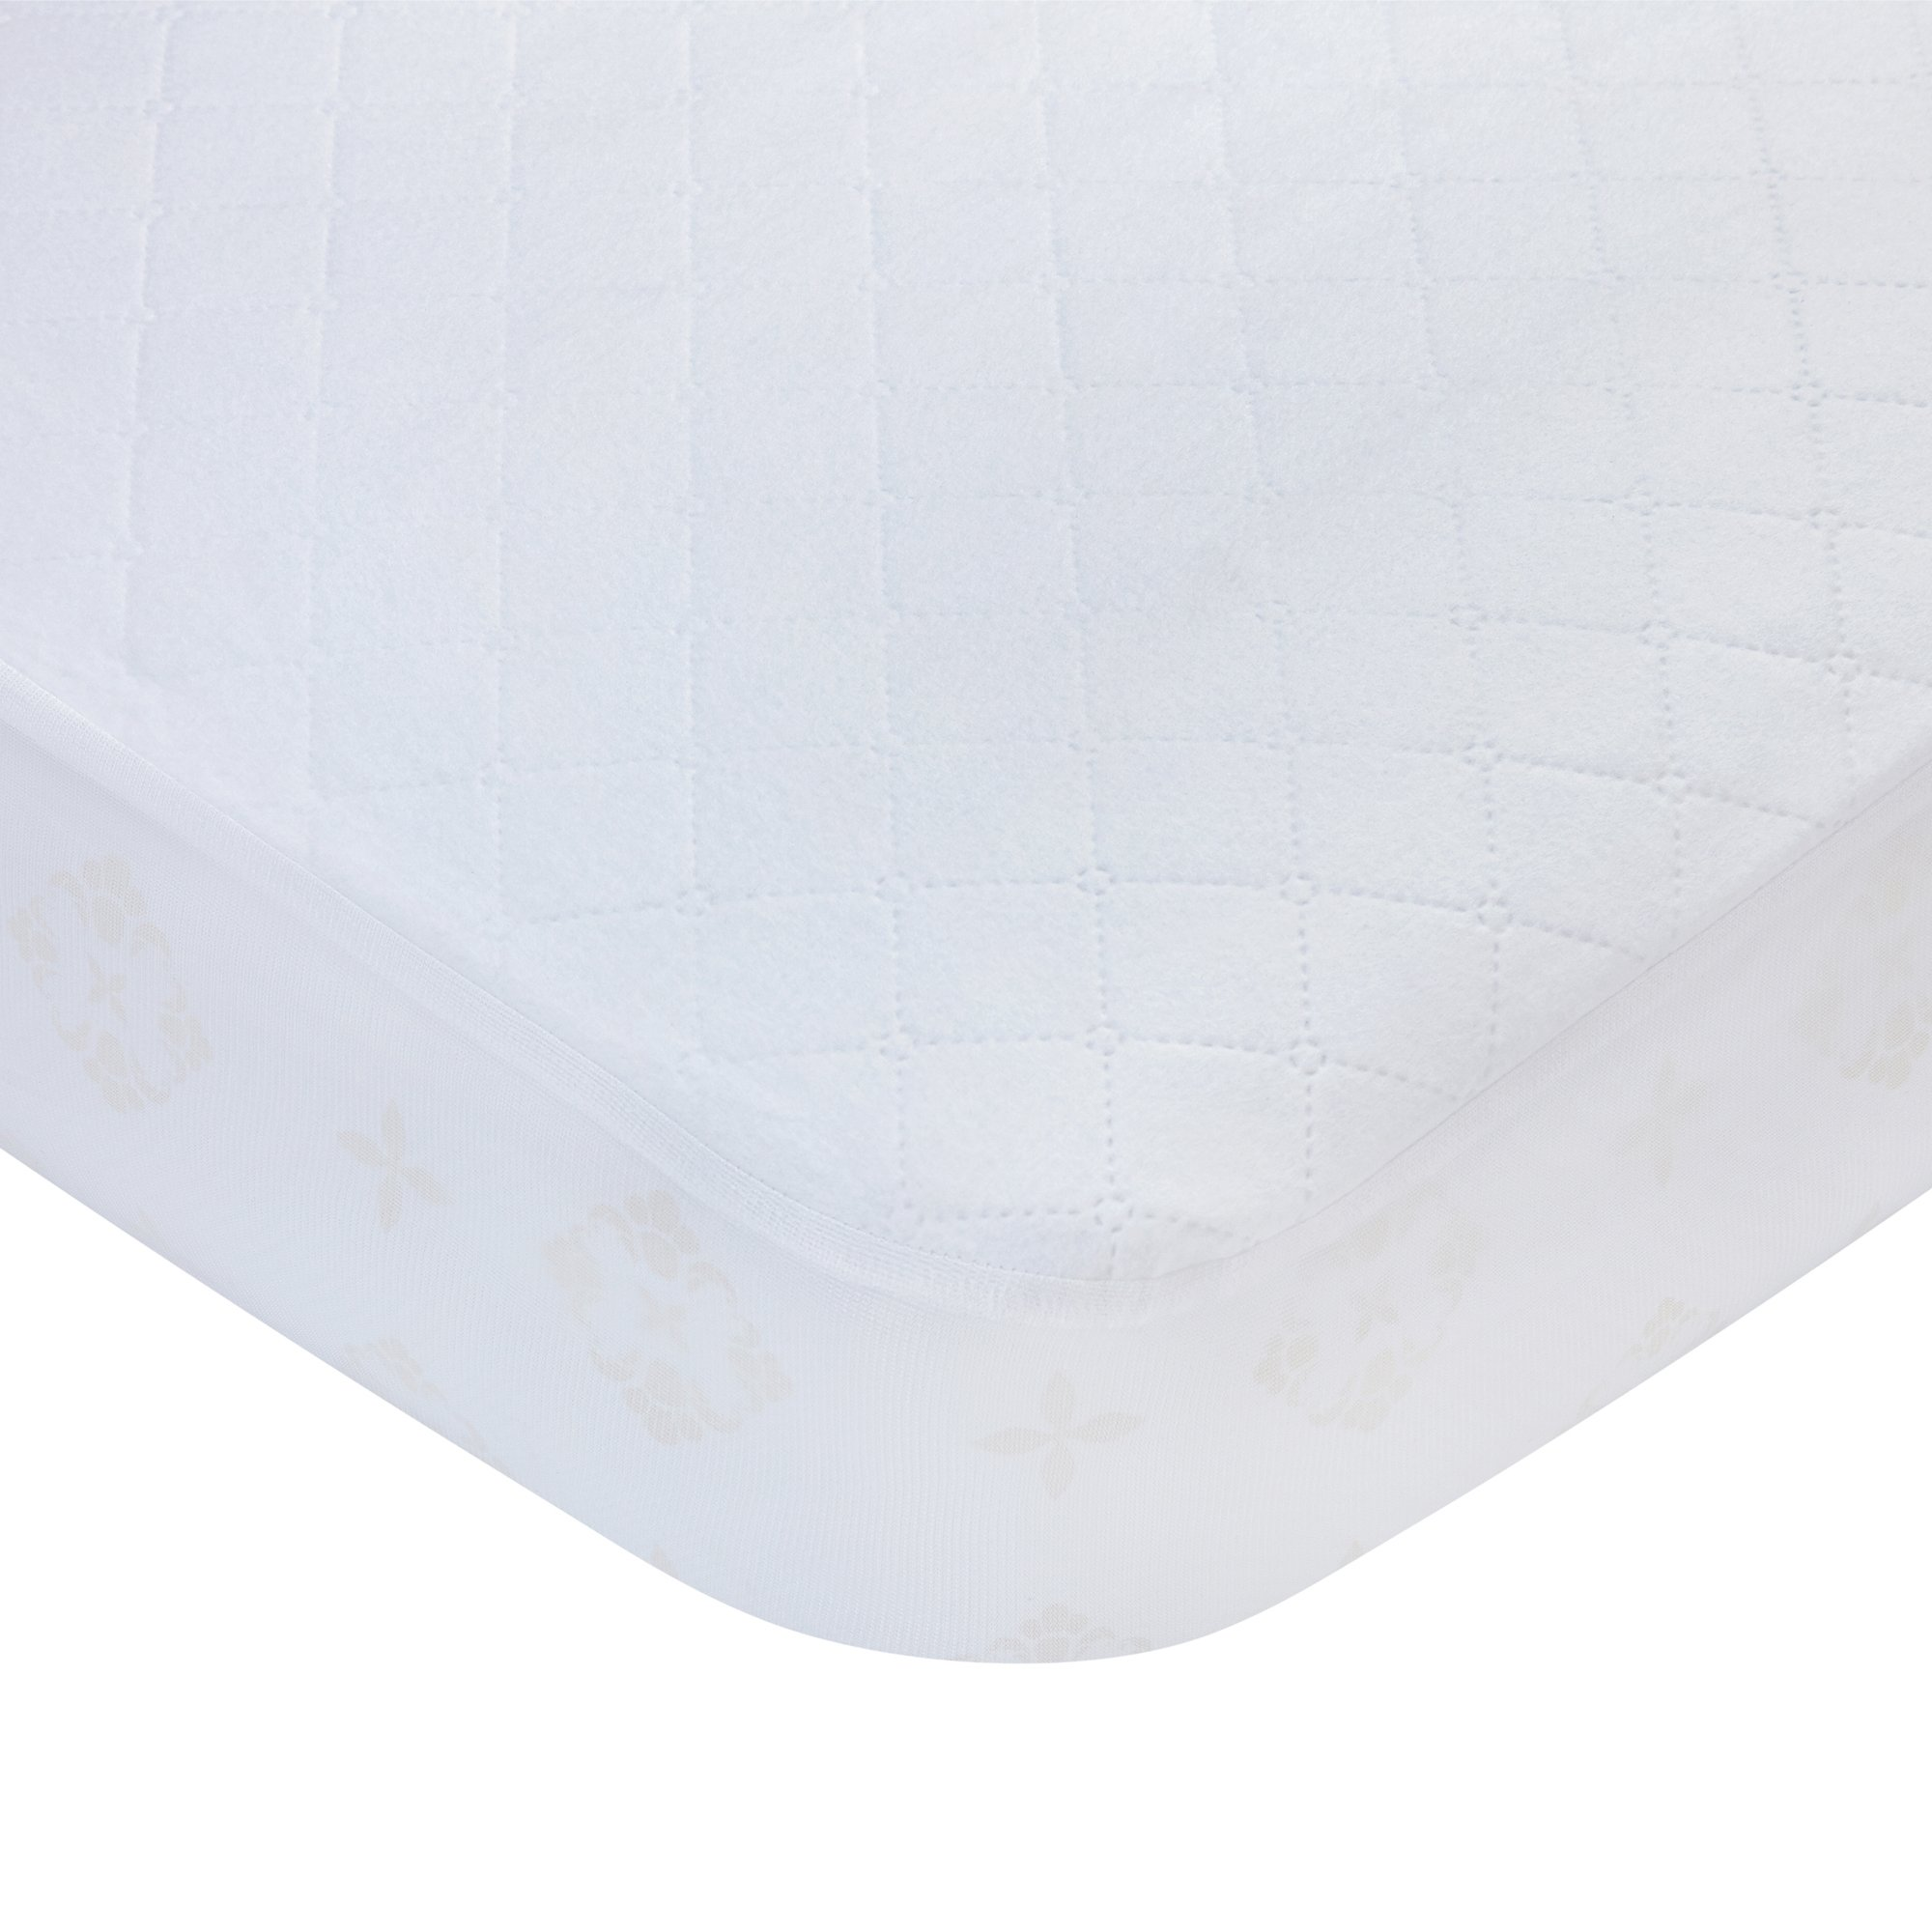 Carters Waterproof Fitted Quilted Crib and Toddler Protective Mattress Pad Cover, White by Carter's